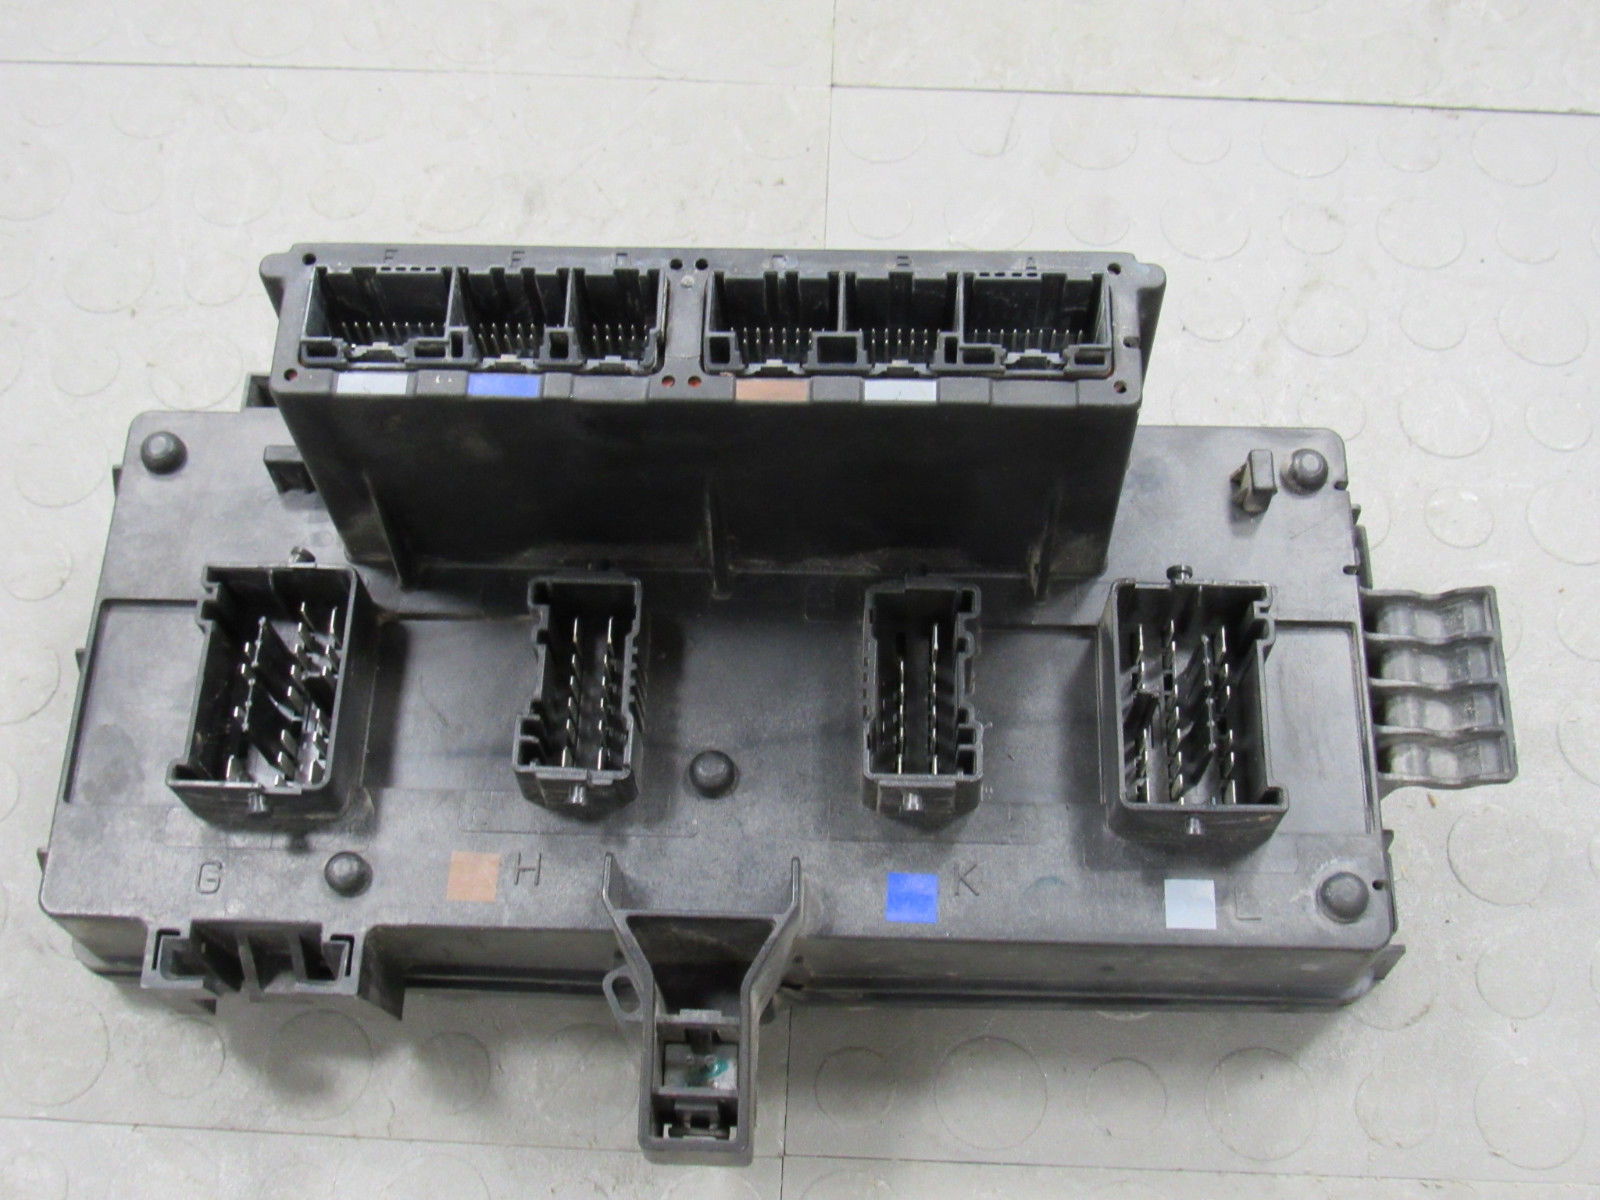 2002 Dodge Ram Tipm Module Fuse Box Totally Integrated Power Block Ah 1600x1200